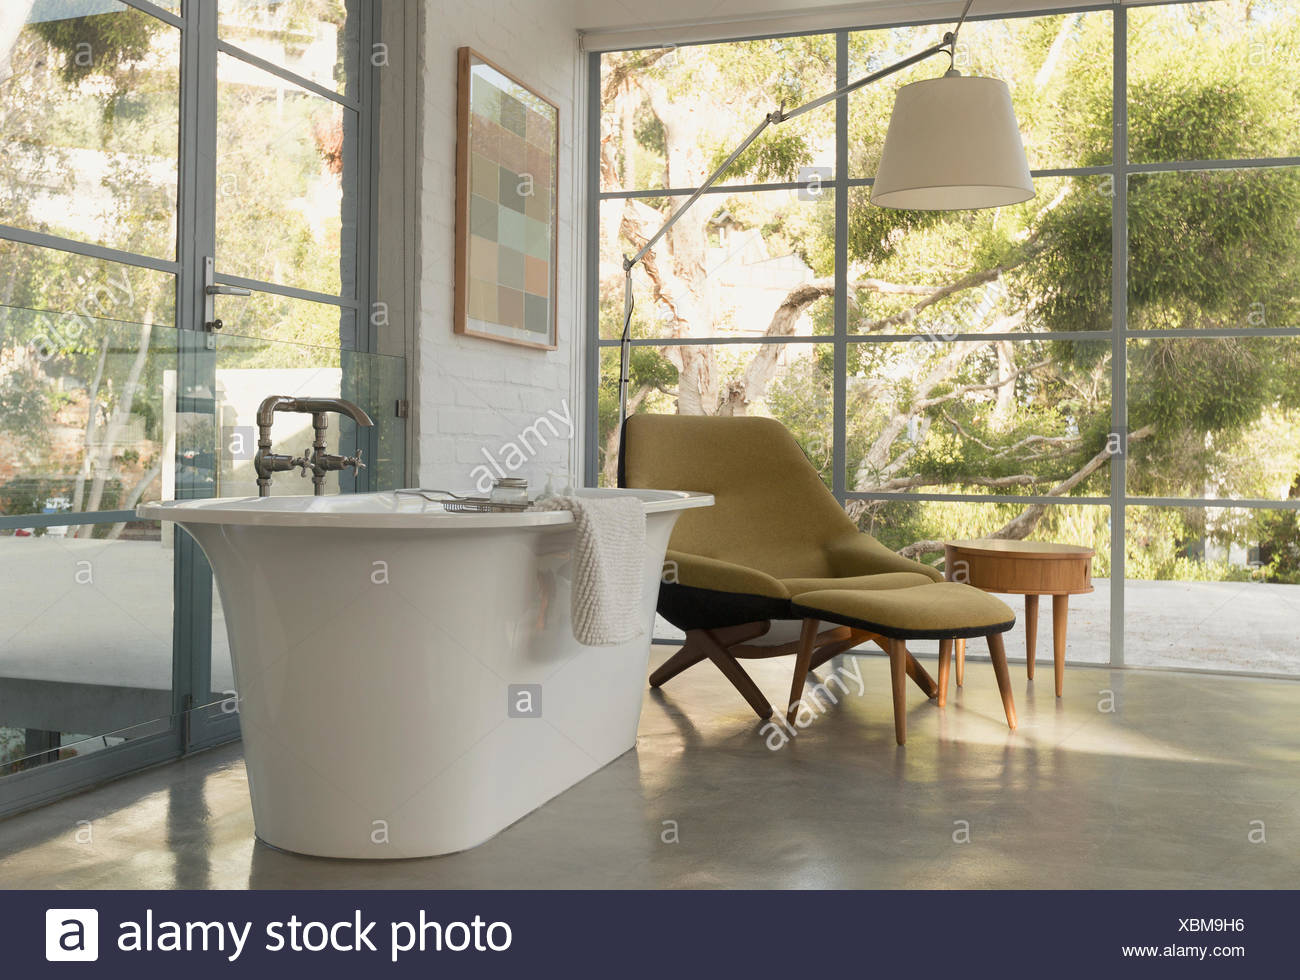 Soaking Tub In Home Showcase Interior Bedroom With Garden View